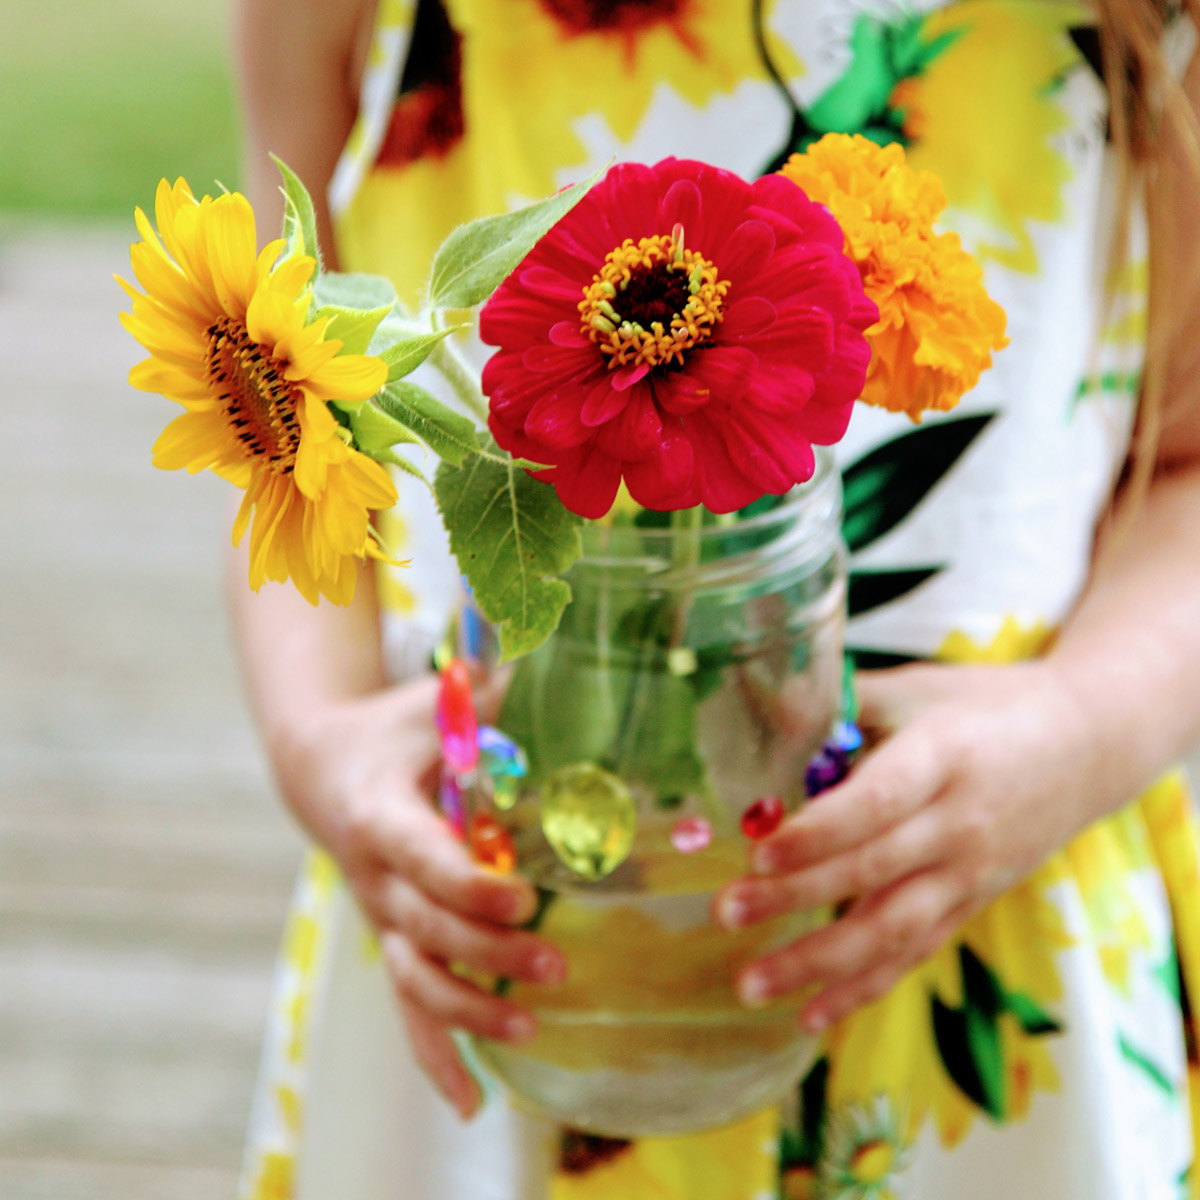 Black Oil Sunflower Seeds: Grow Bouquets or Birdseed